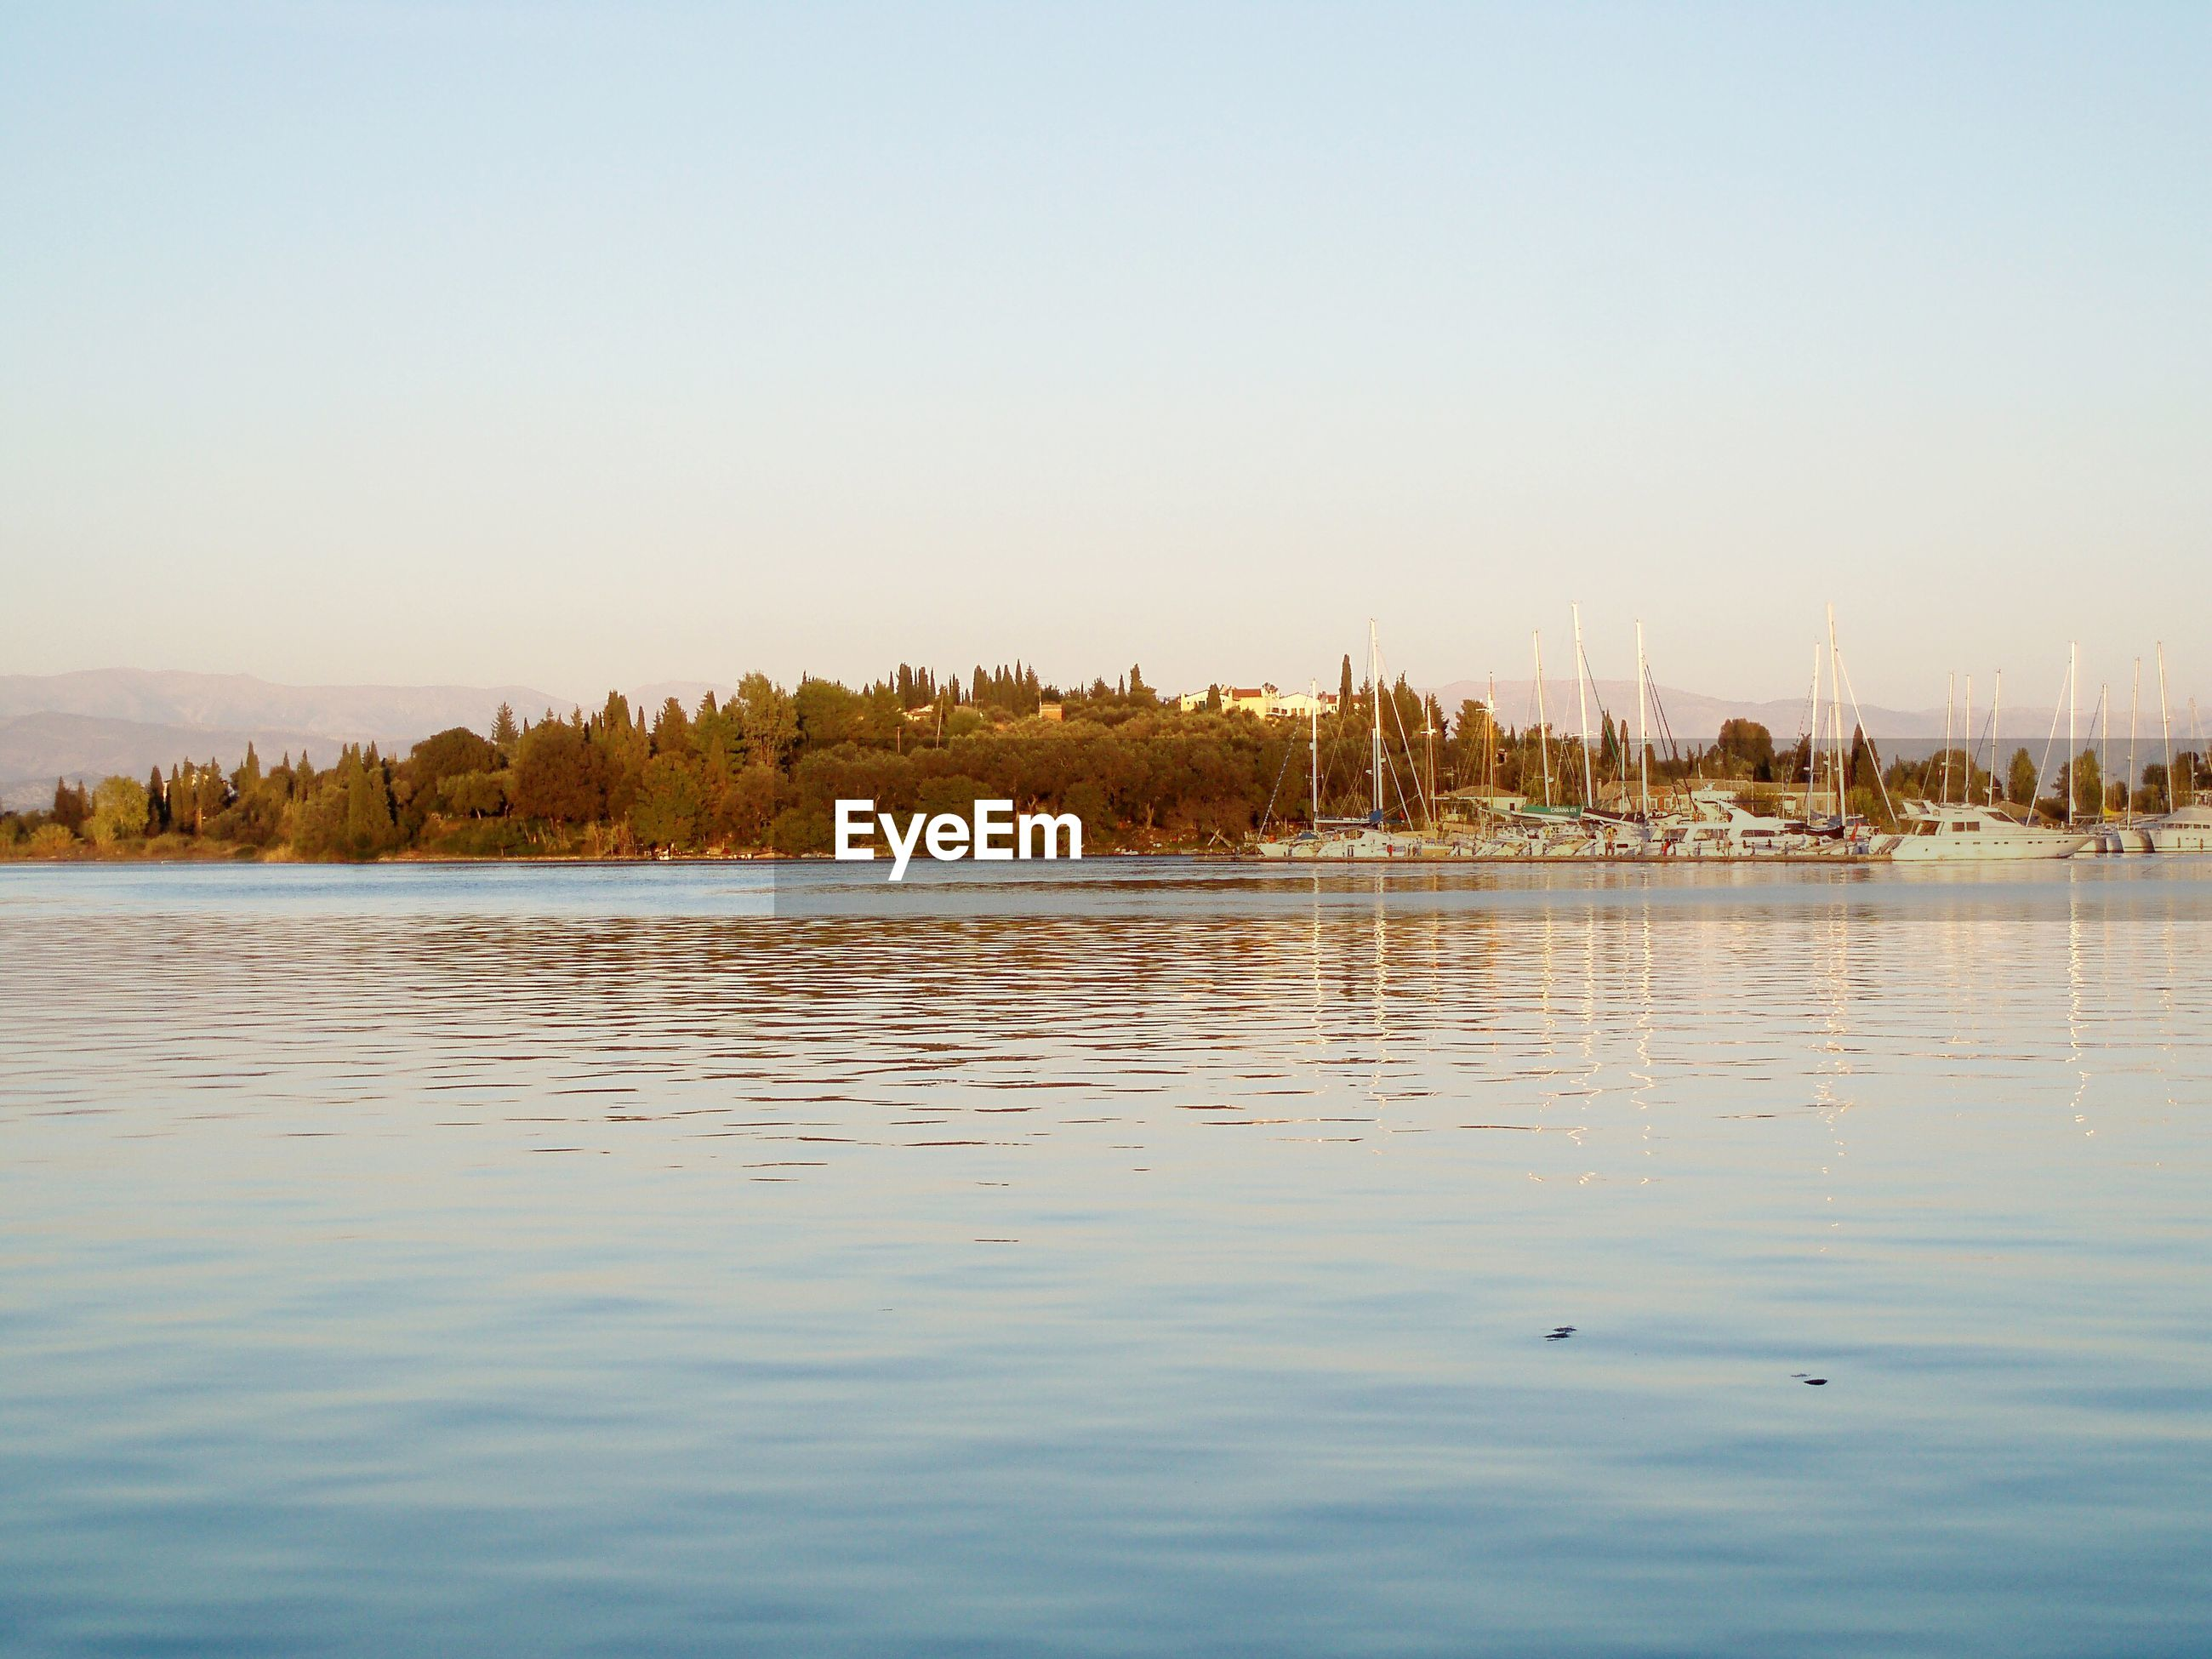 VIEW OF LAKE AGAINST CLEAR SKY